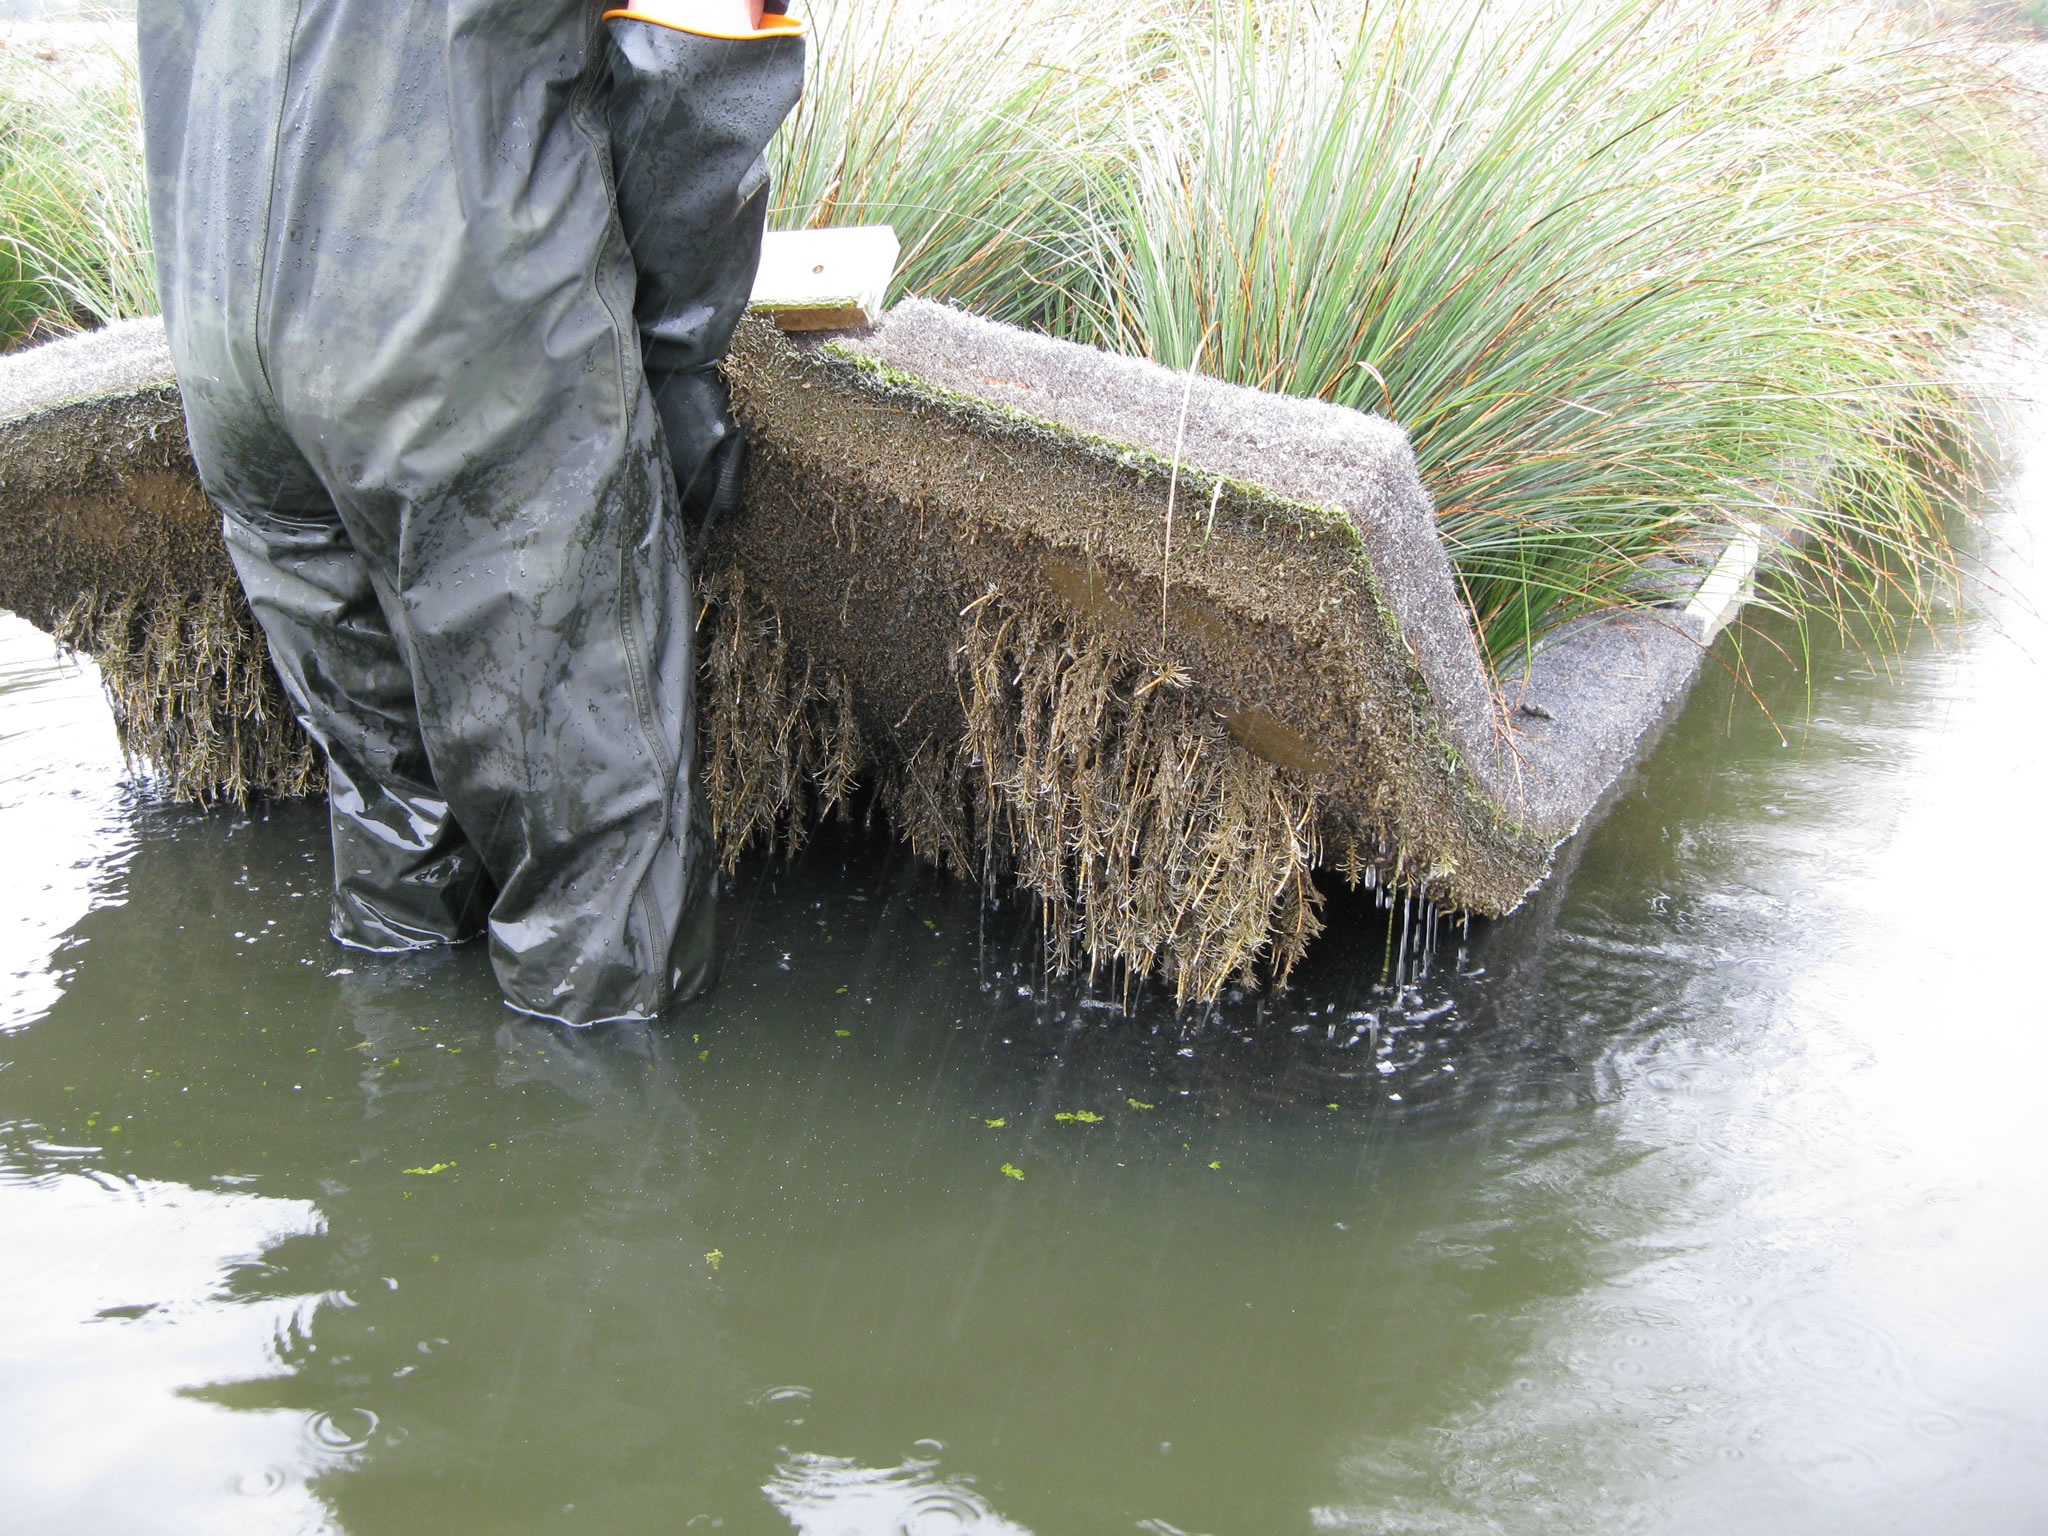 Research paper on industrial wastewater treatment